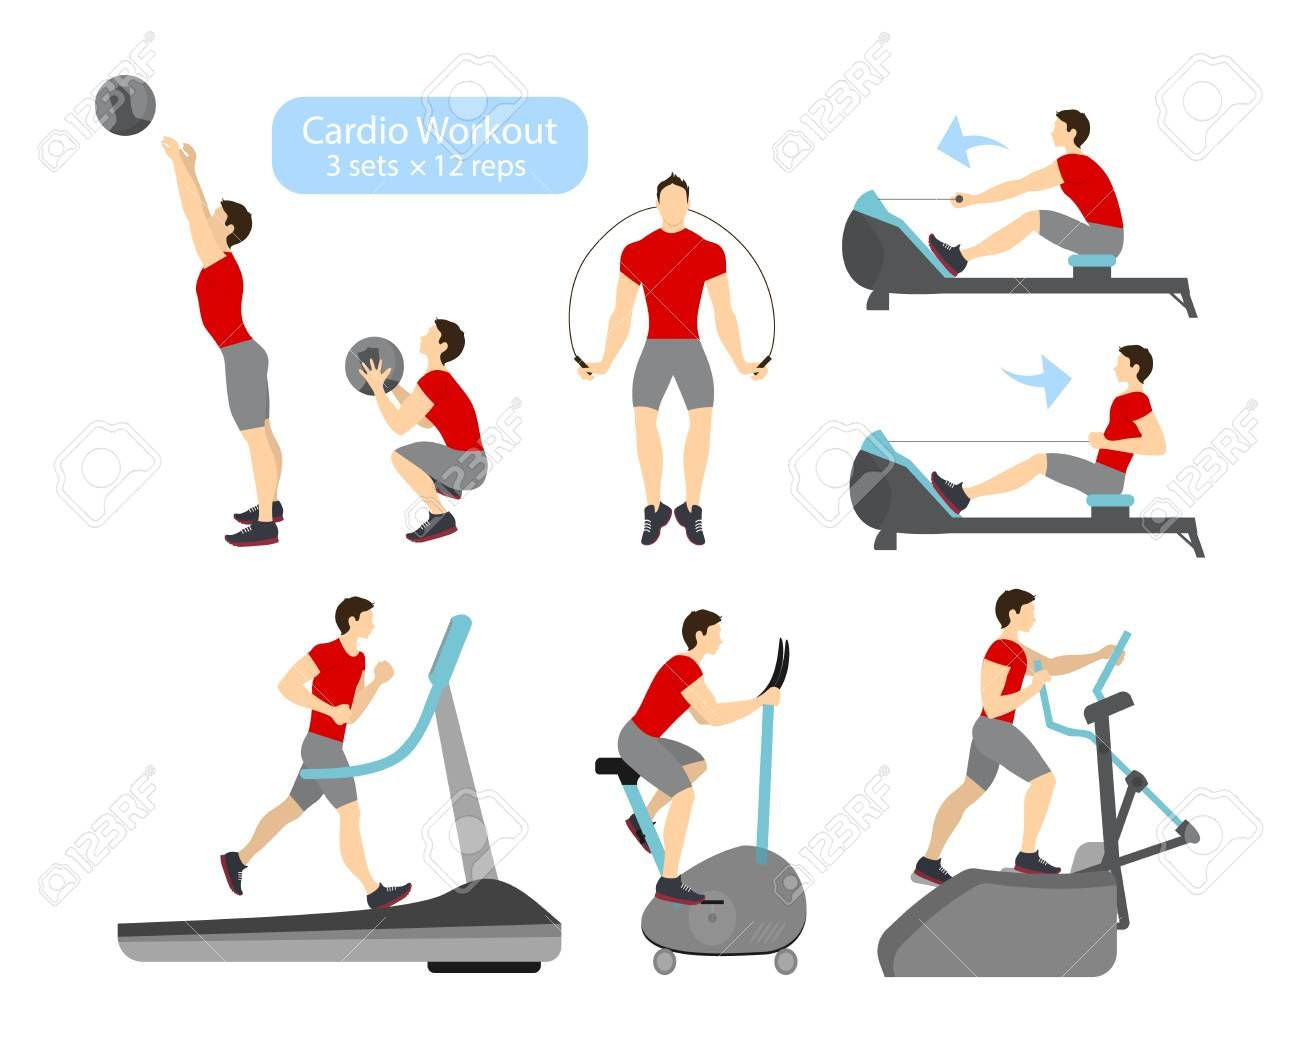 Aerobic Exercise Examples In 2021 Aerobic Exercise Cardio Workout Physical Fitness